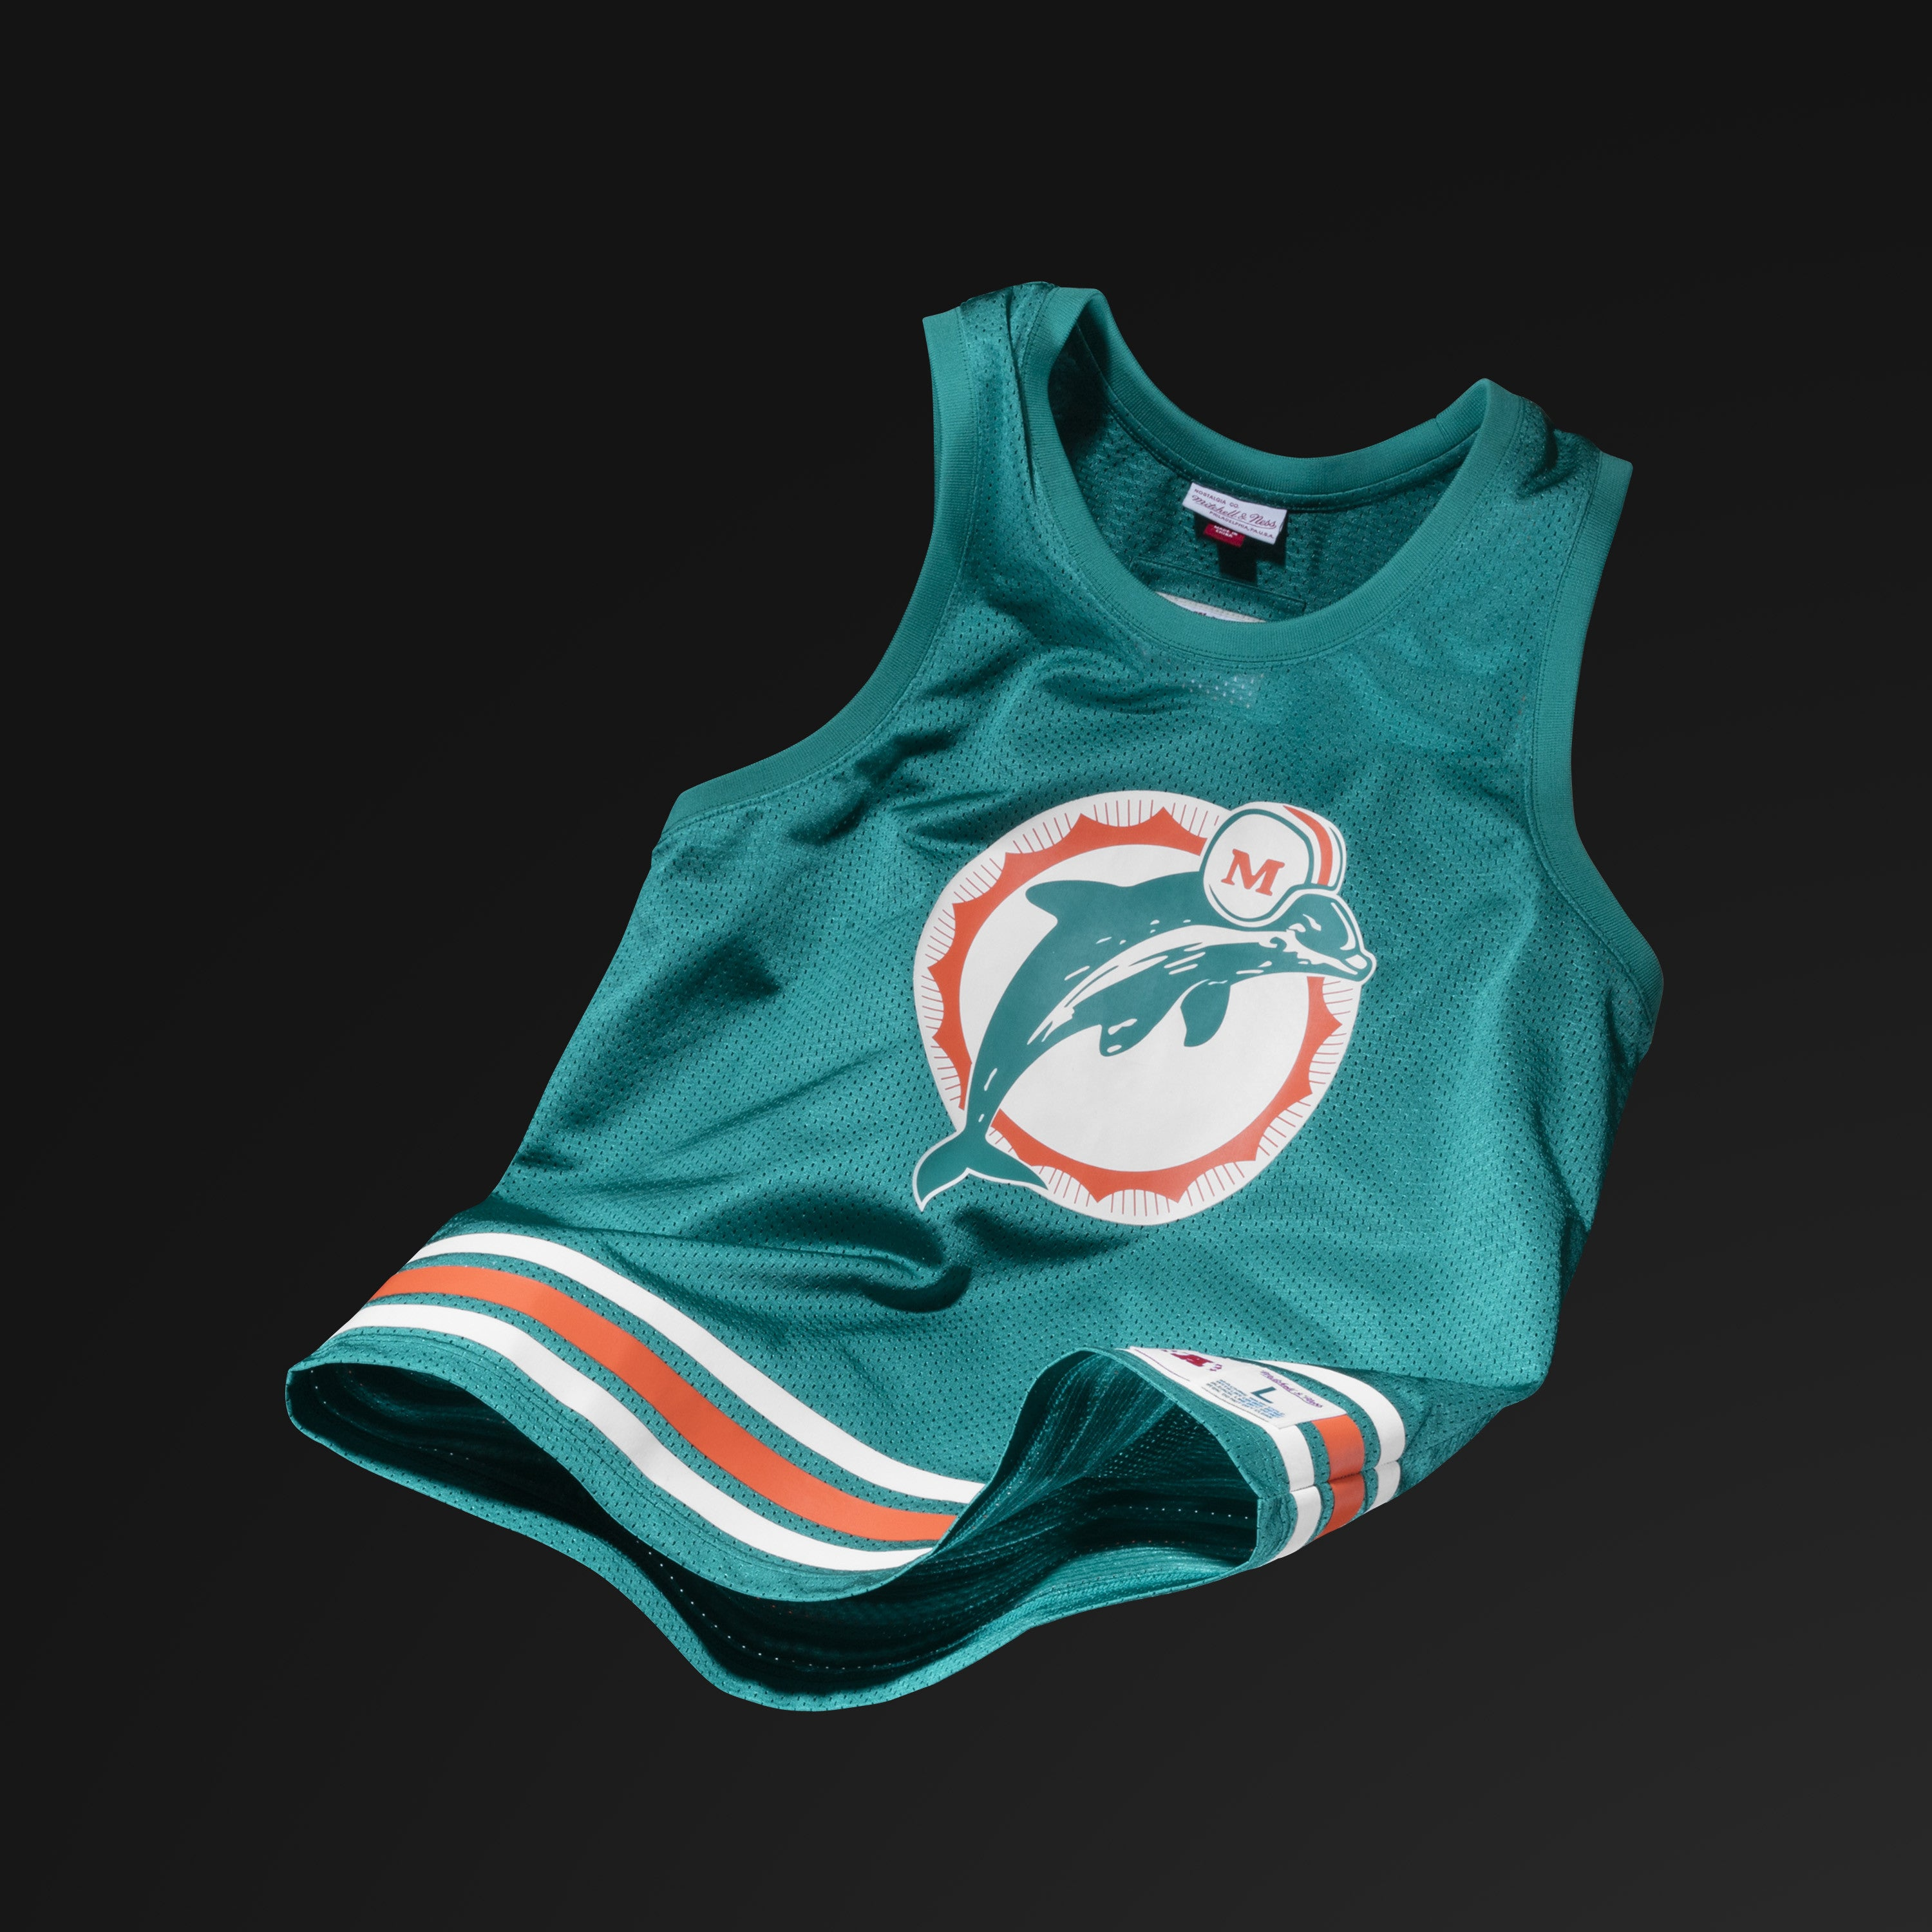 Mitchell & Ness Football Jerseys - Dolphins - CNCPTS